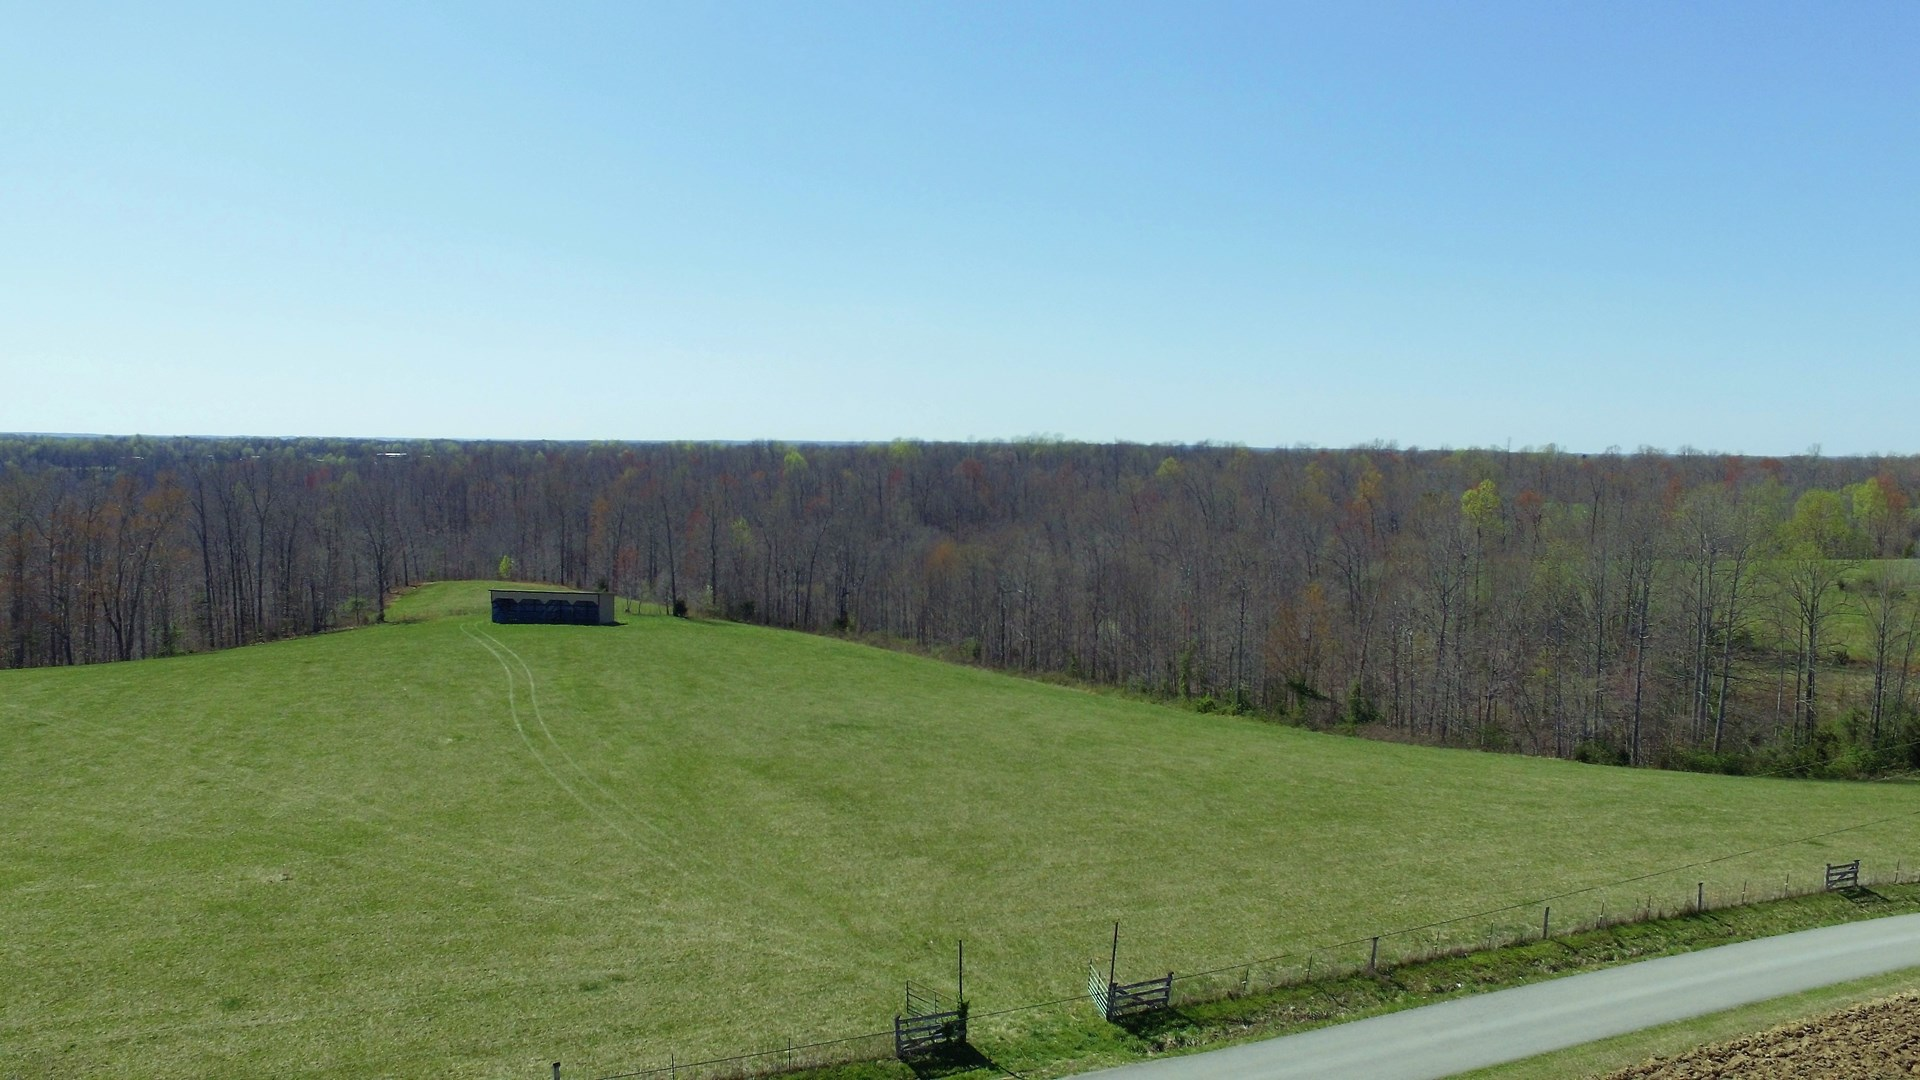 UNRESTRICTED ACREAGE-BLDG. SITES-EQUIP. SHED-POND-LIBERTY KY